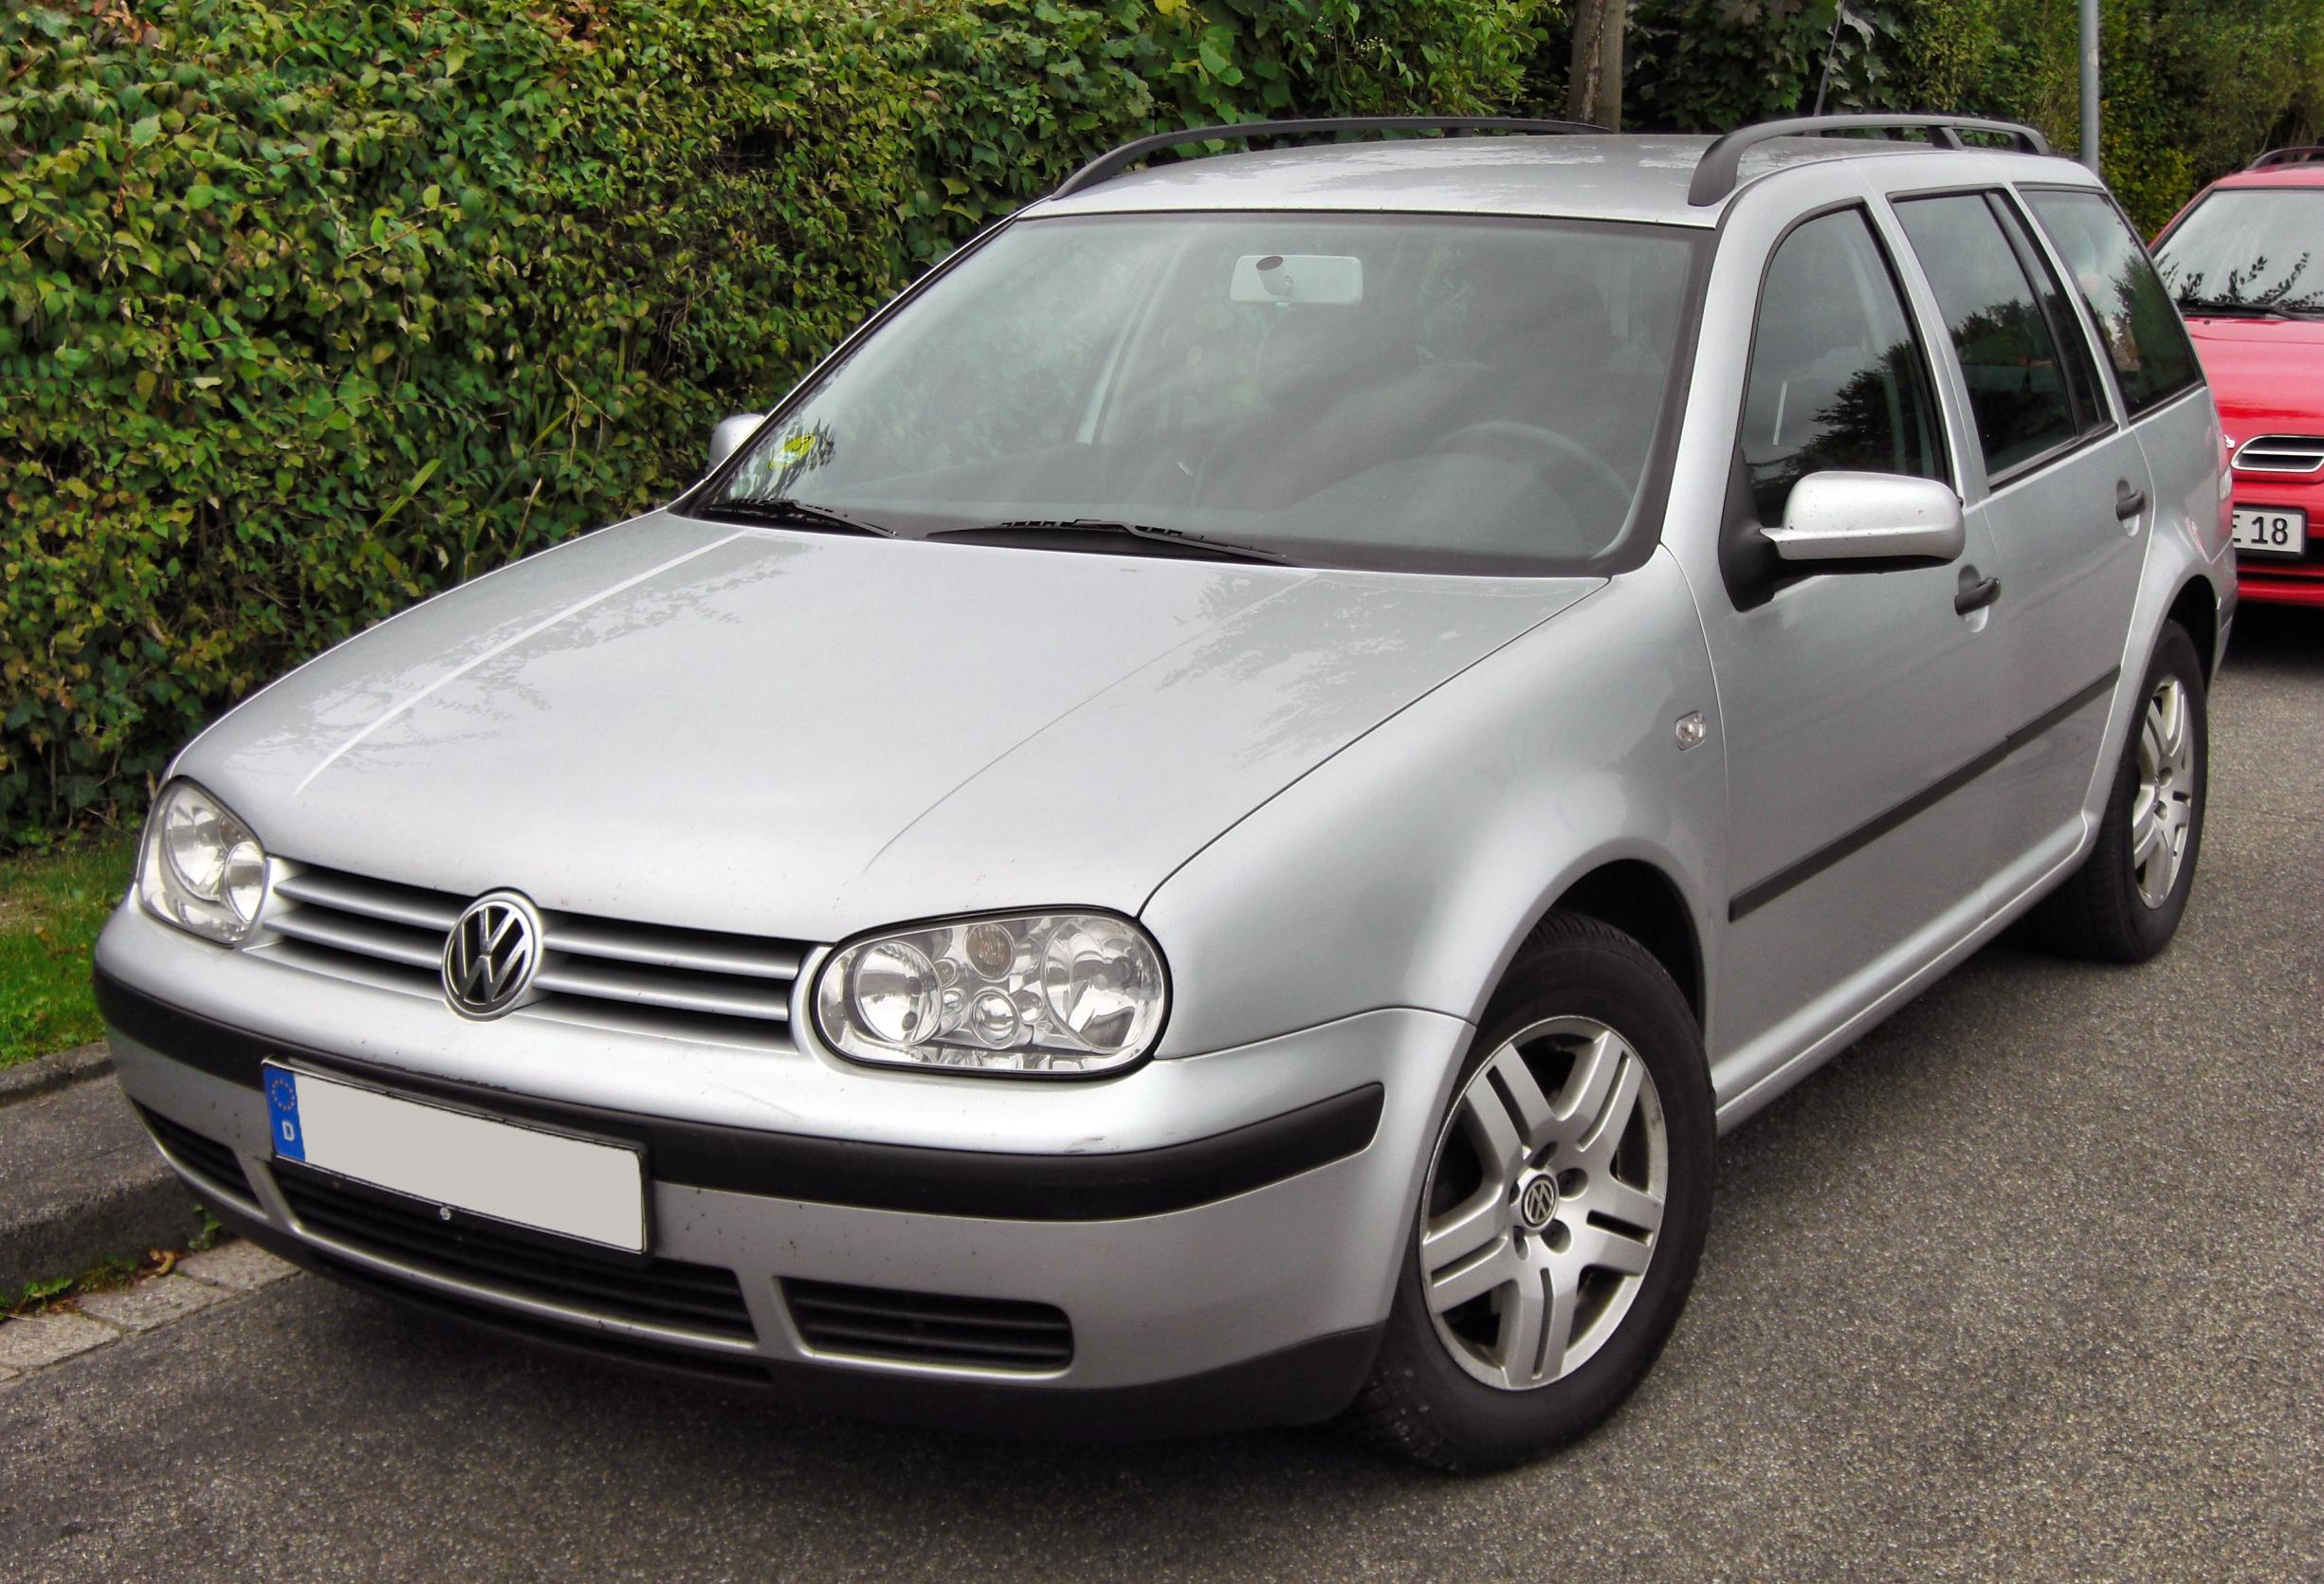 File vw golf iv variant 20090910 front jpg wikimedia commons - Entraxe golf 4 ...